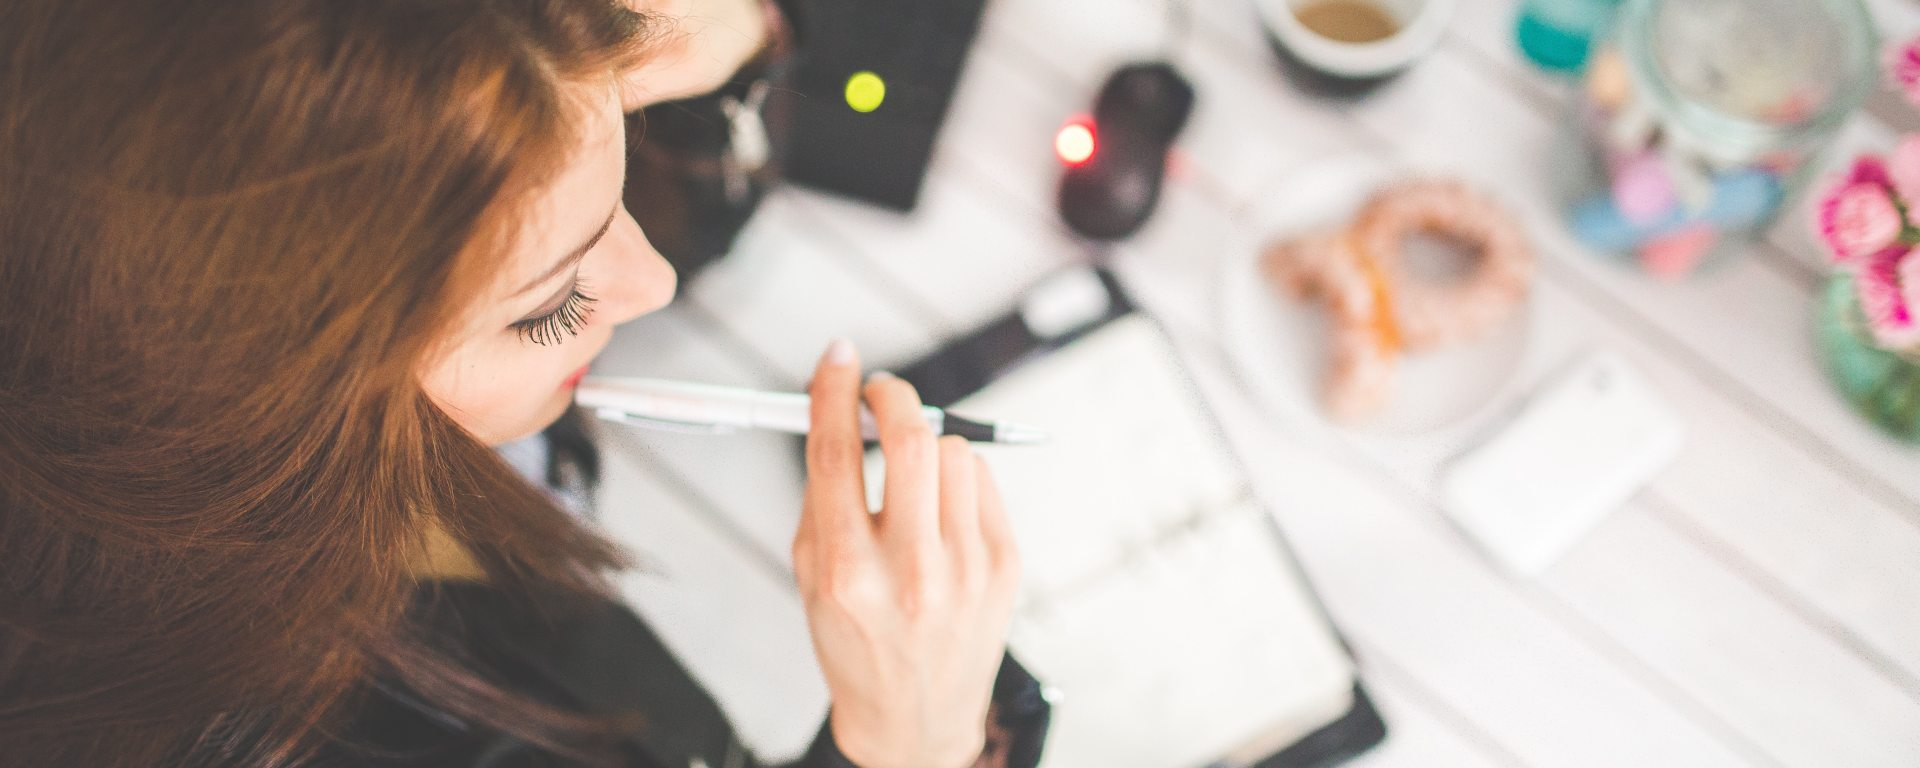 Young woman at desk with pen in mouth